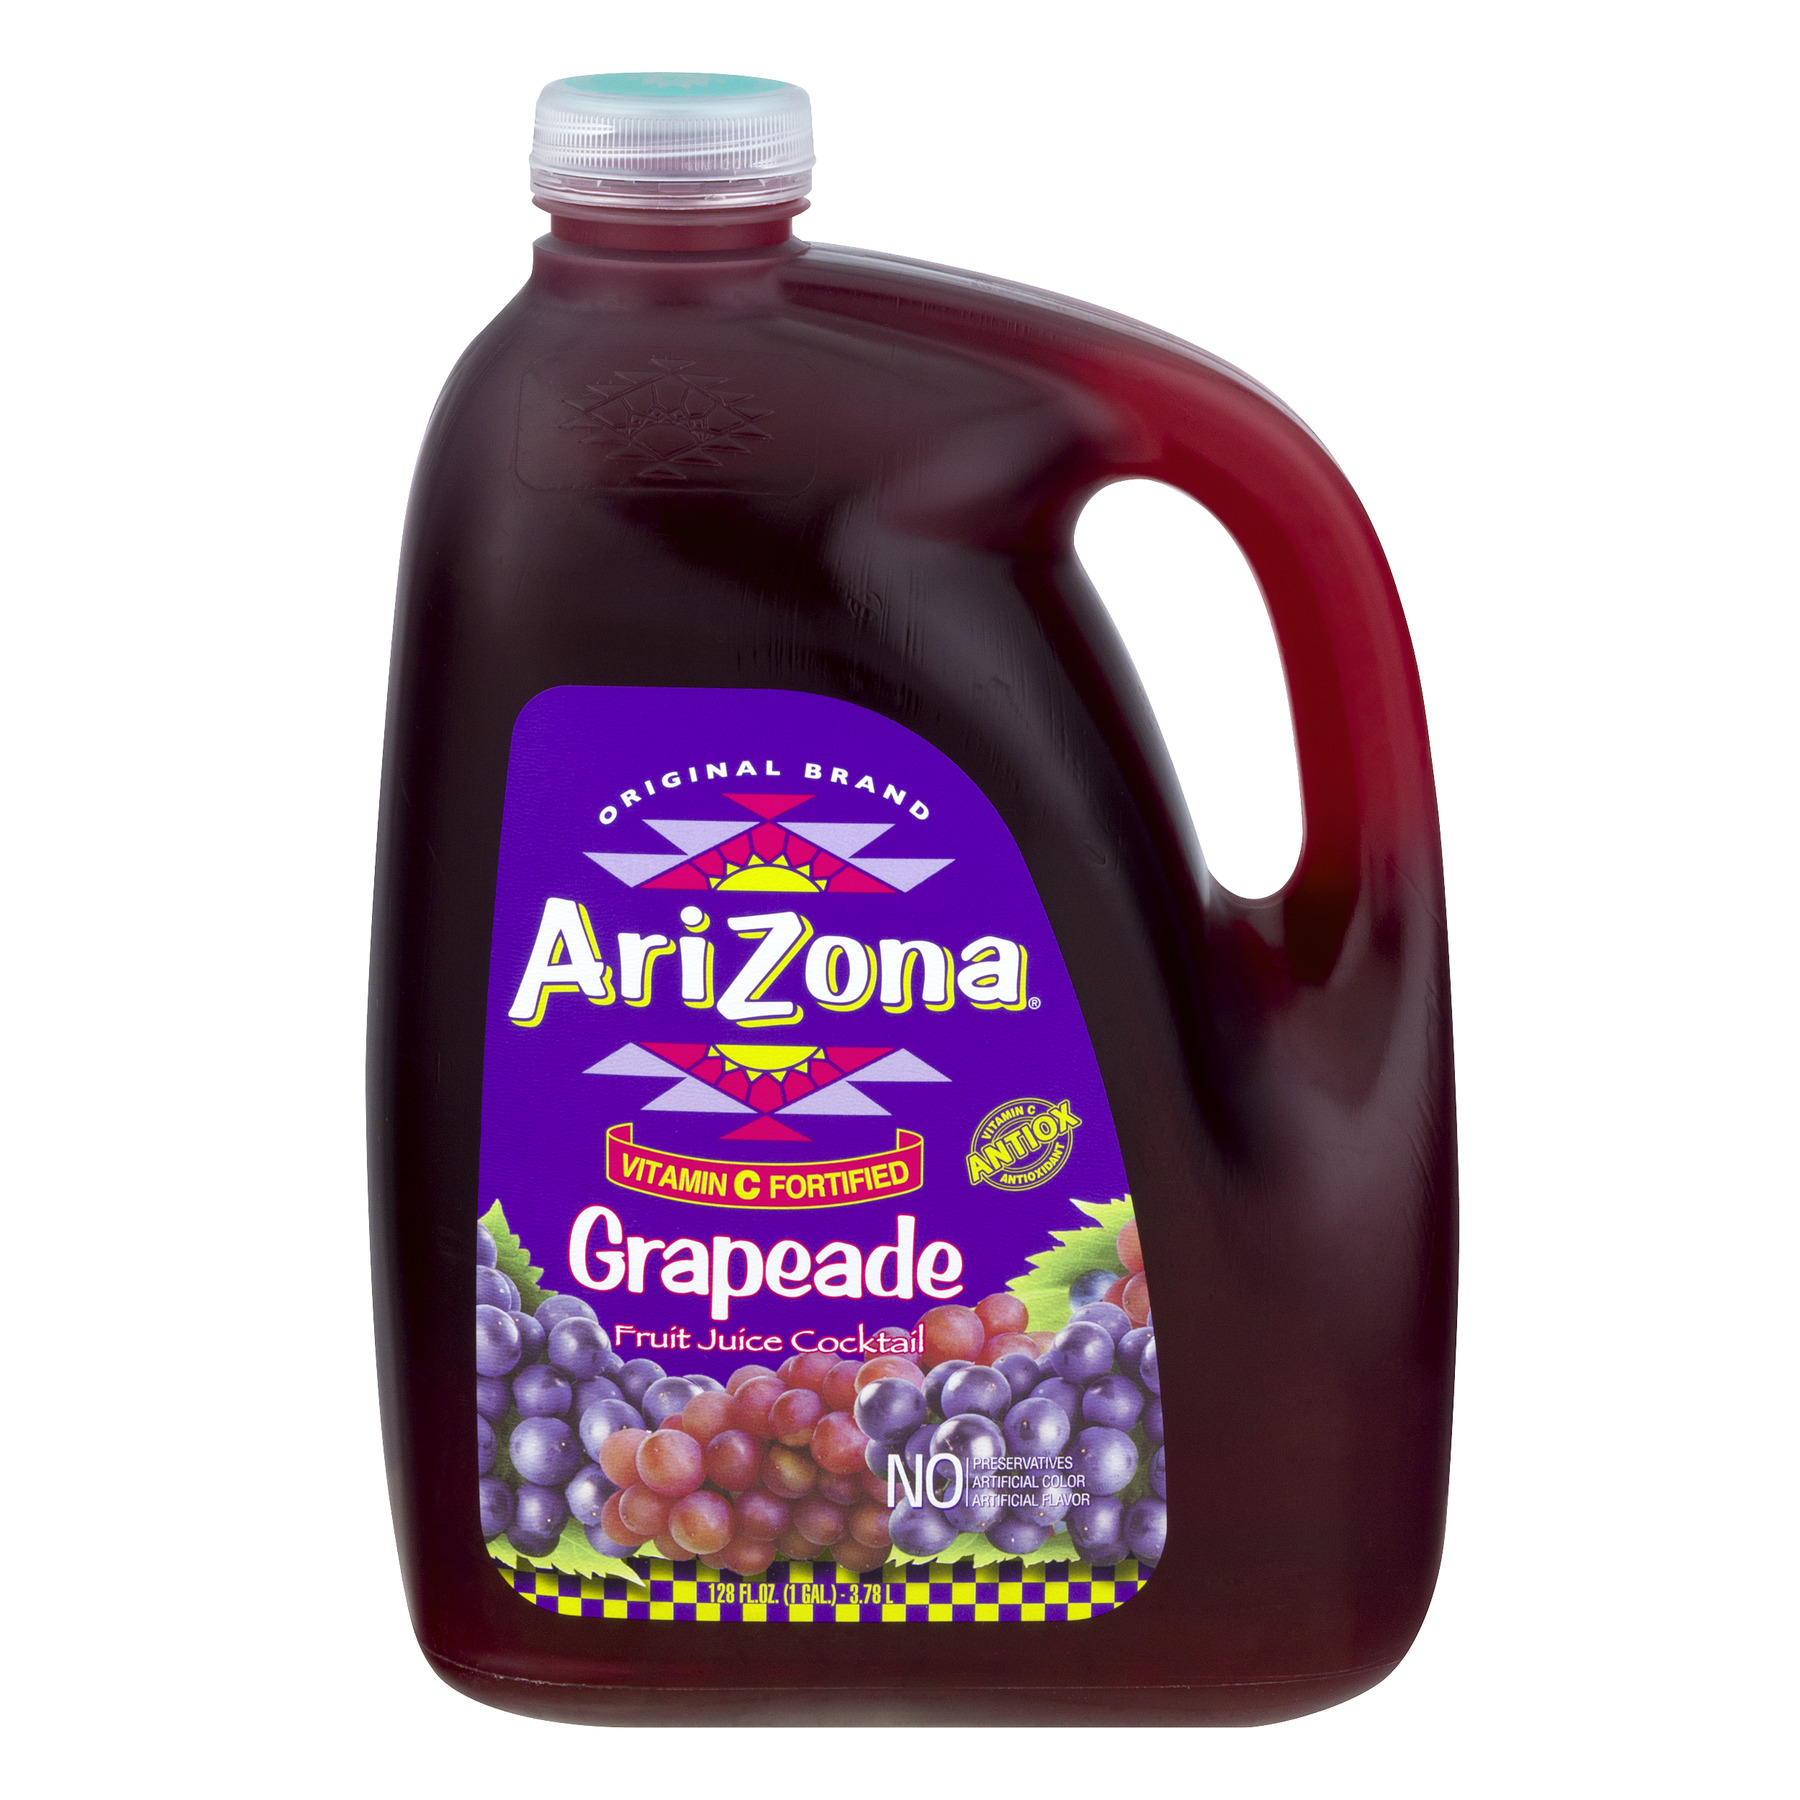 Arizona Juice Cocktail, Grapeade, 128 Fl Oz, 1 Count